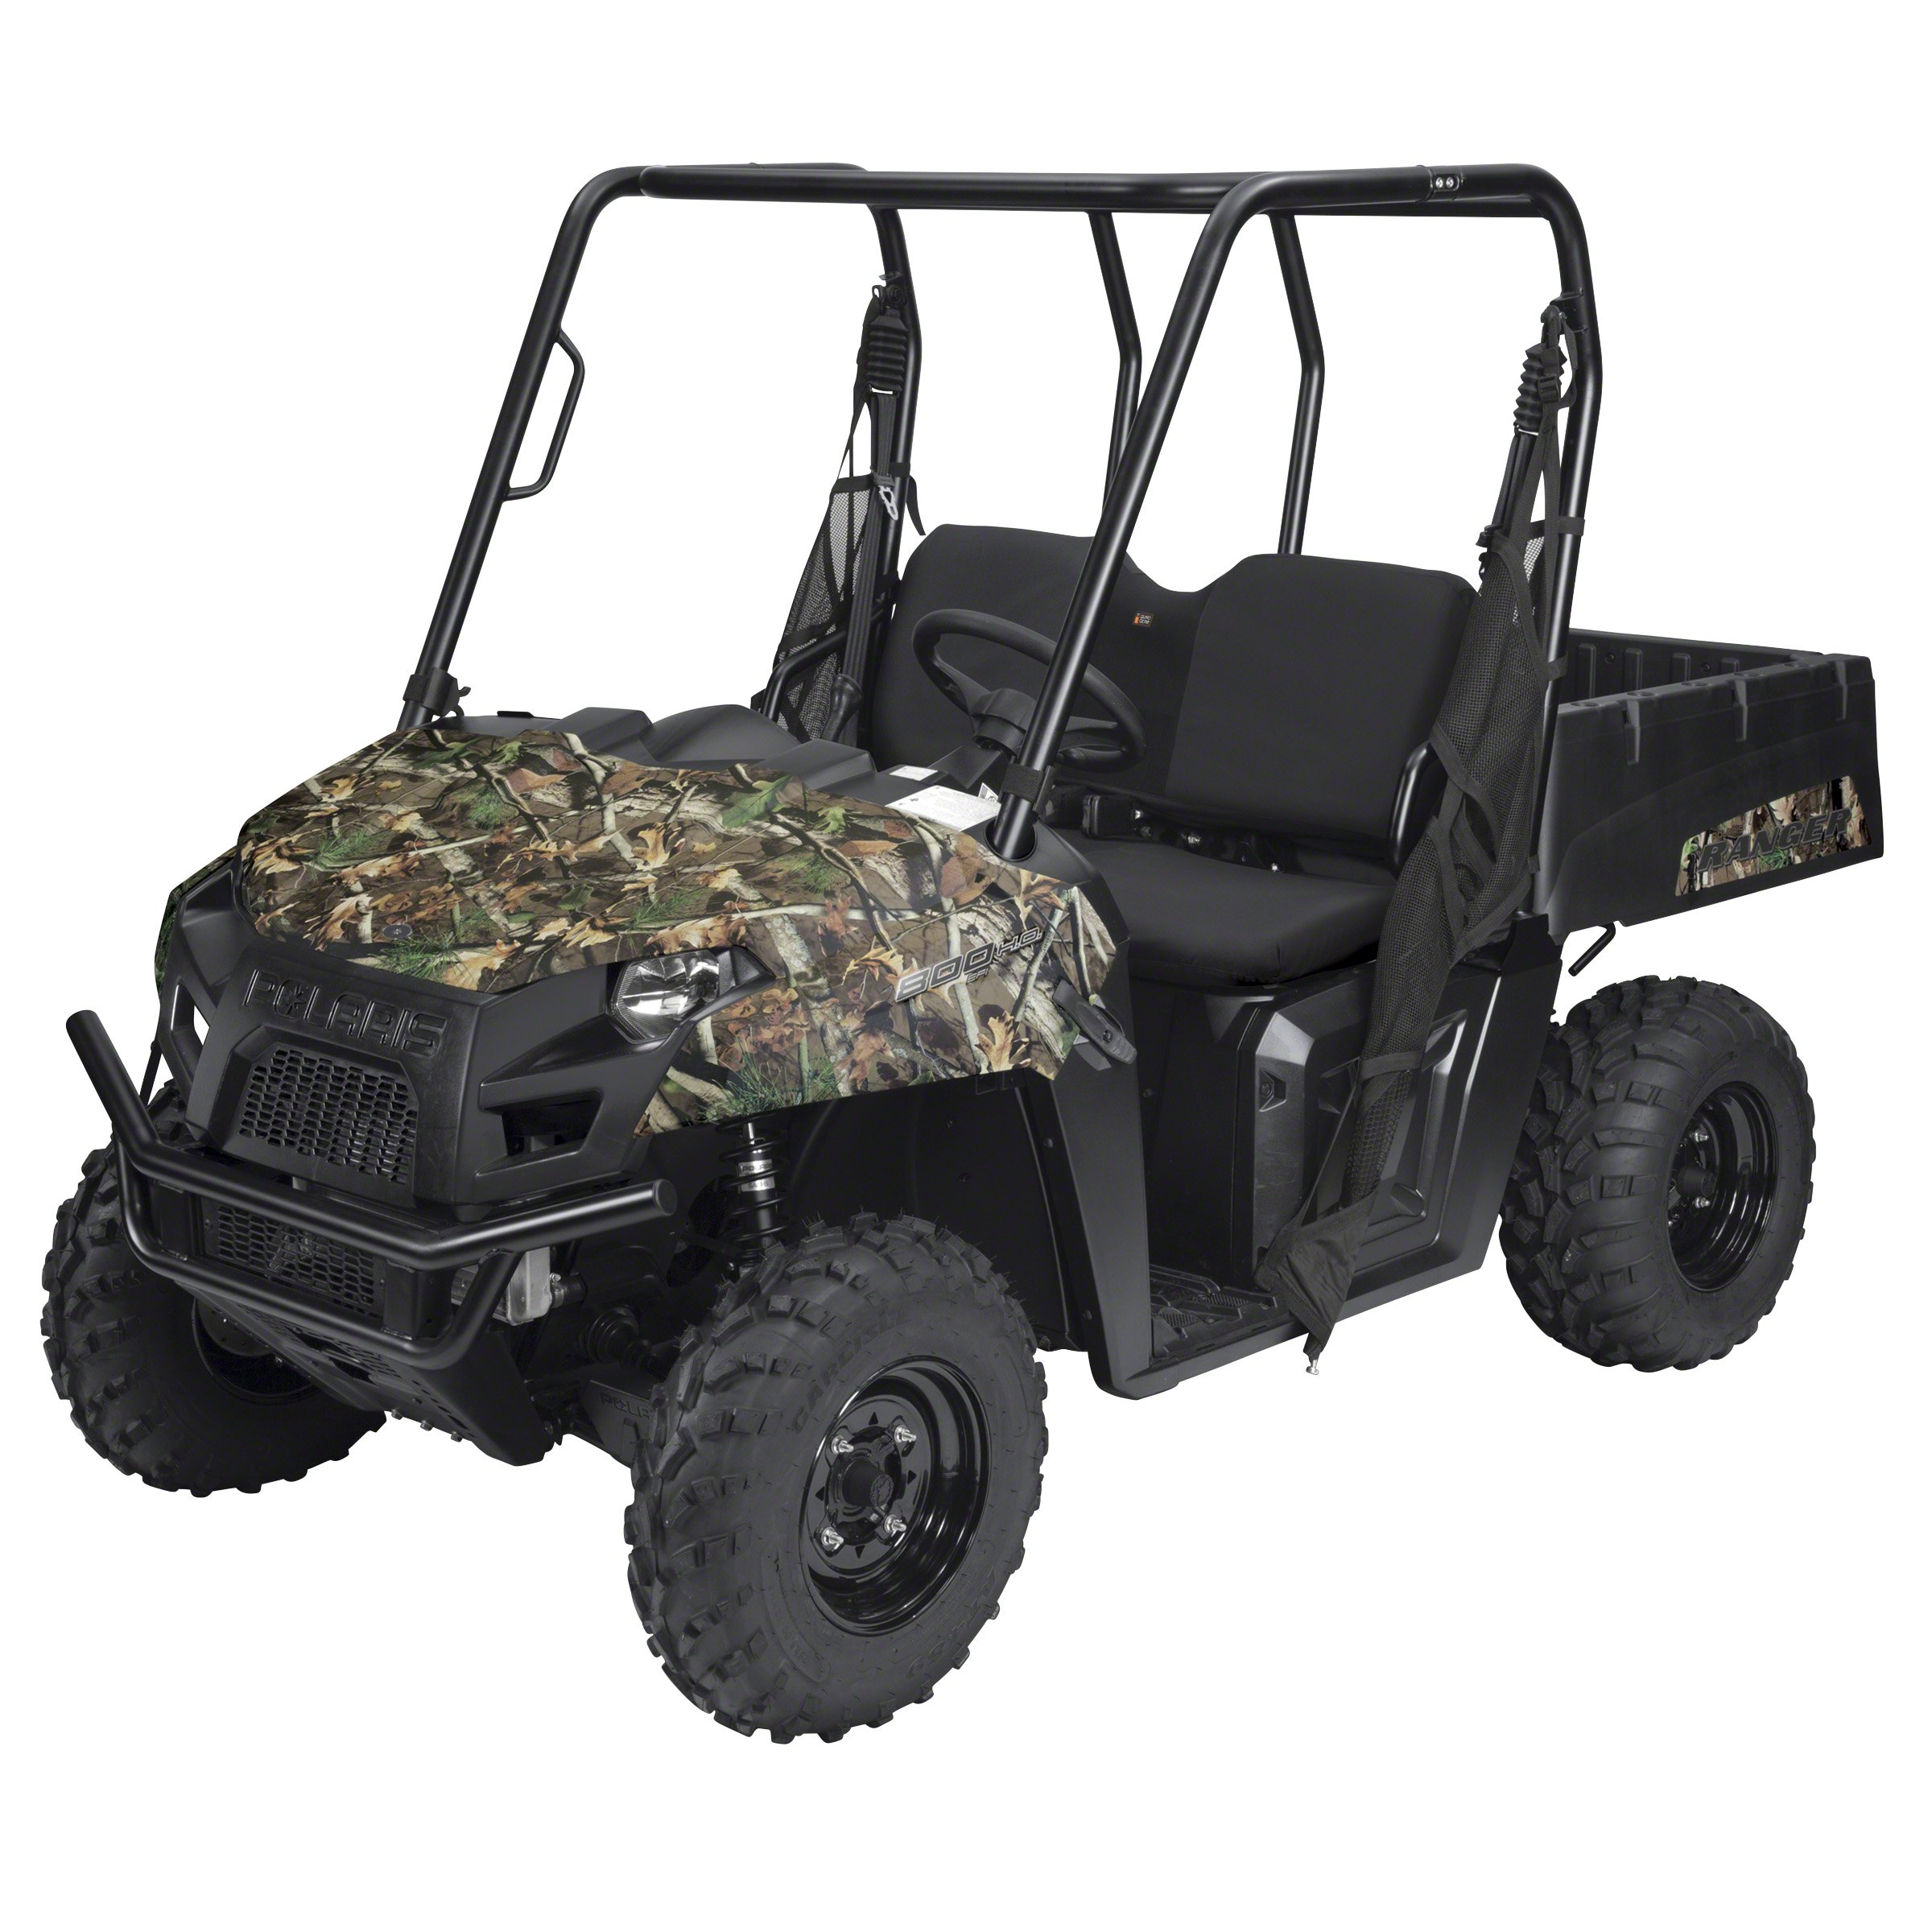 Classic Accessories 18-140-010403-00 Black QuadGear UTV Bench Seat Cover